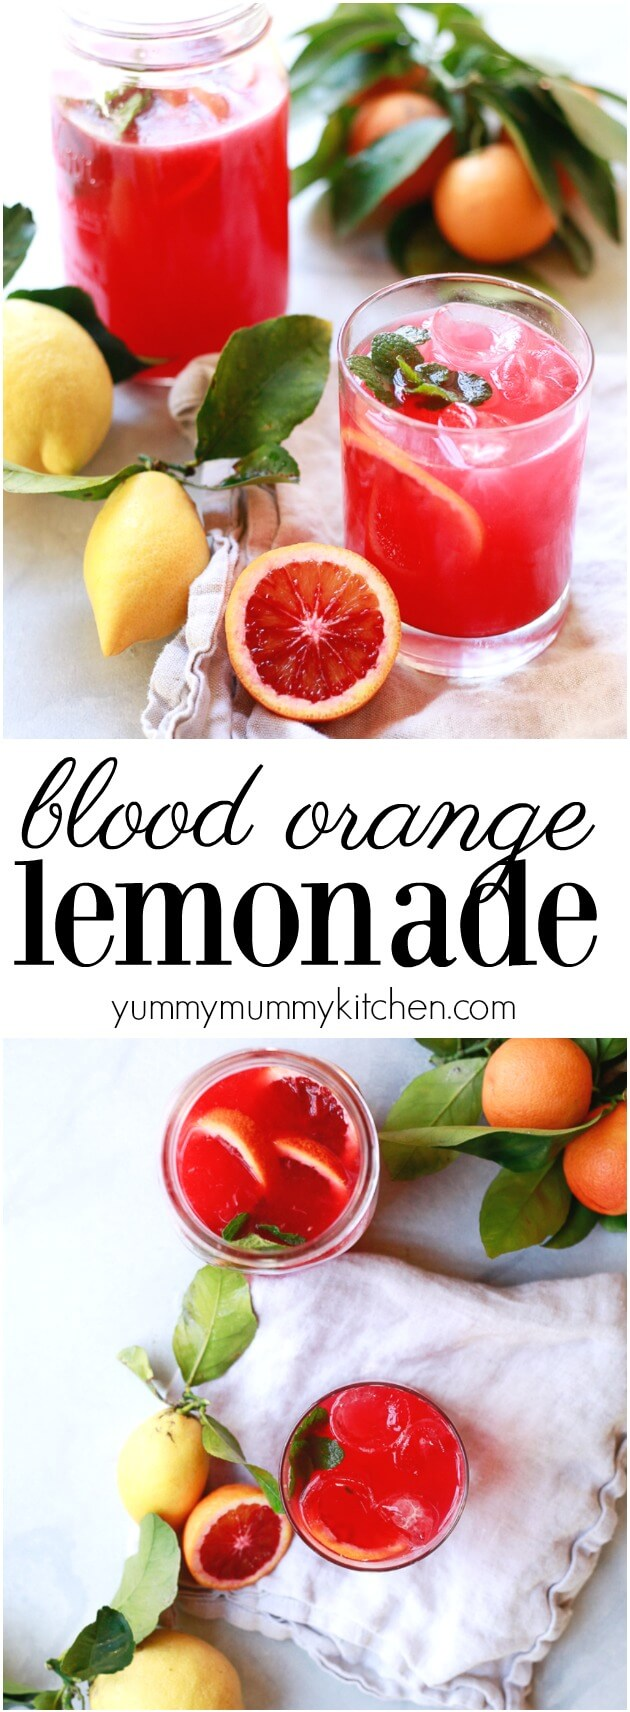 This easy and healthy blood orange lemonade recipe is so beautiful and delicious. It's naturally sweetened with stevia or honey and the perfect healthy non-alcoholic beverage. This blood orange lemonade recipe is just like from Panera - but even better.